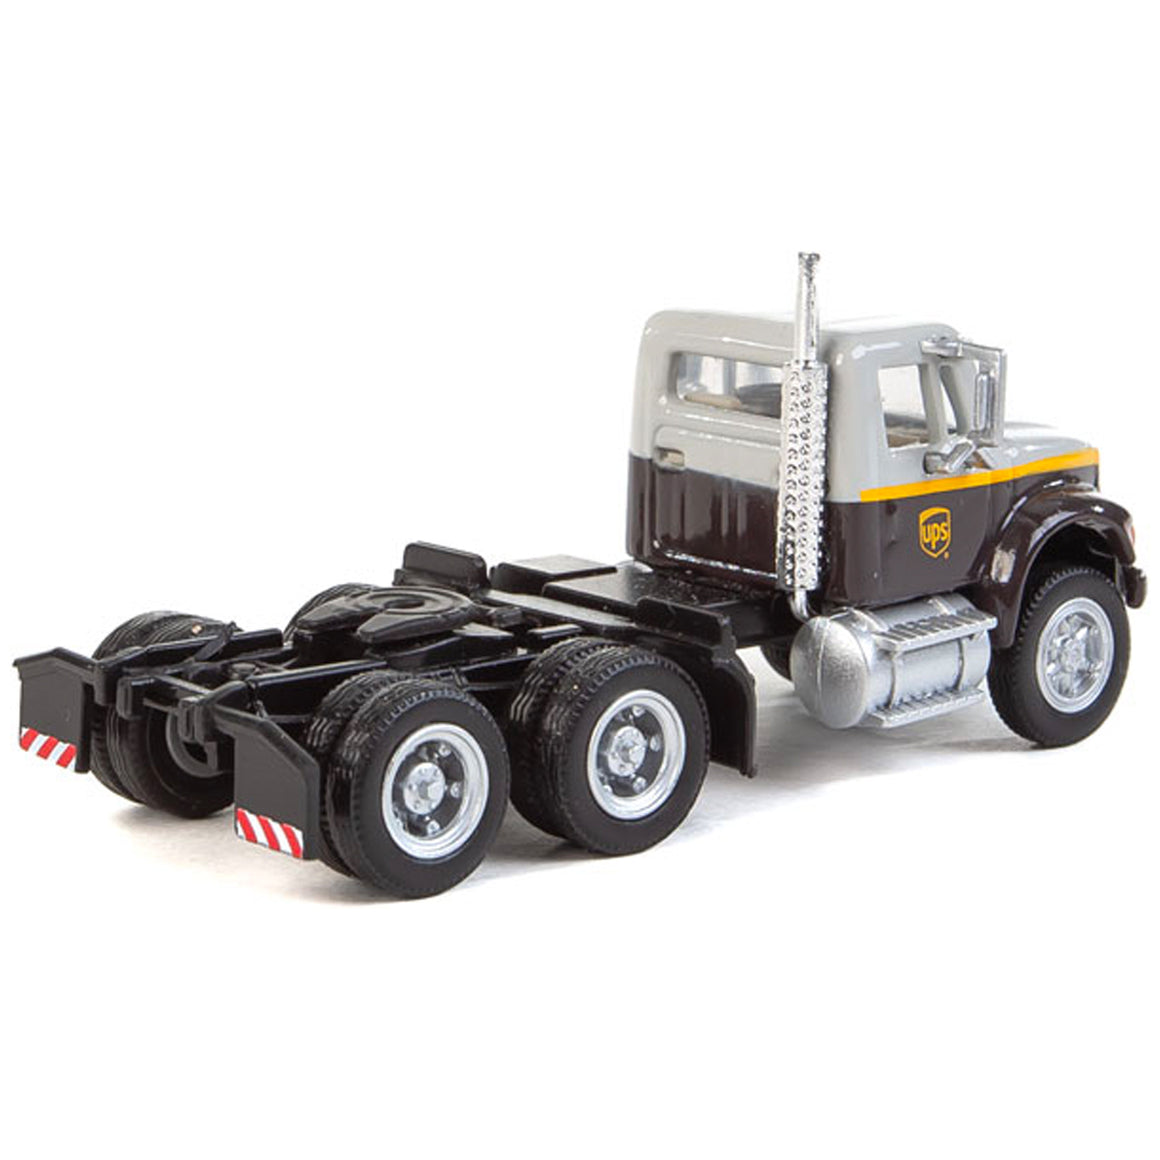 HO Scale: International 4900 Dual Axle Semi Tractor - UPS 'Gray'